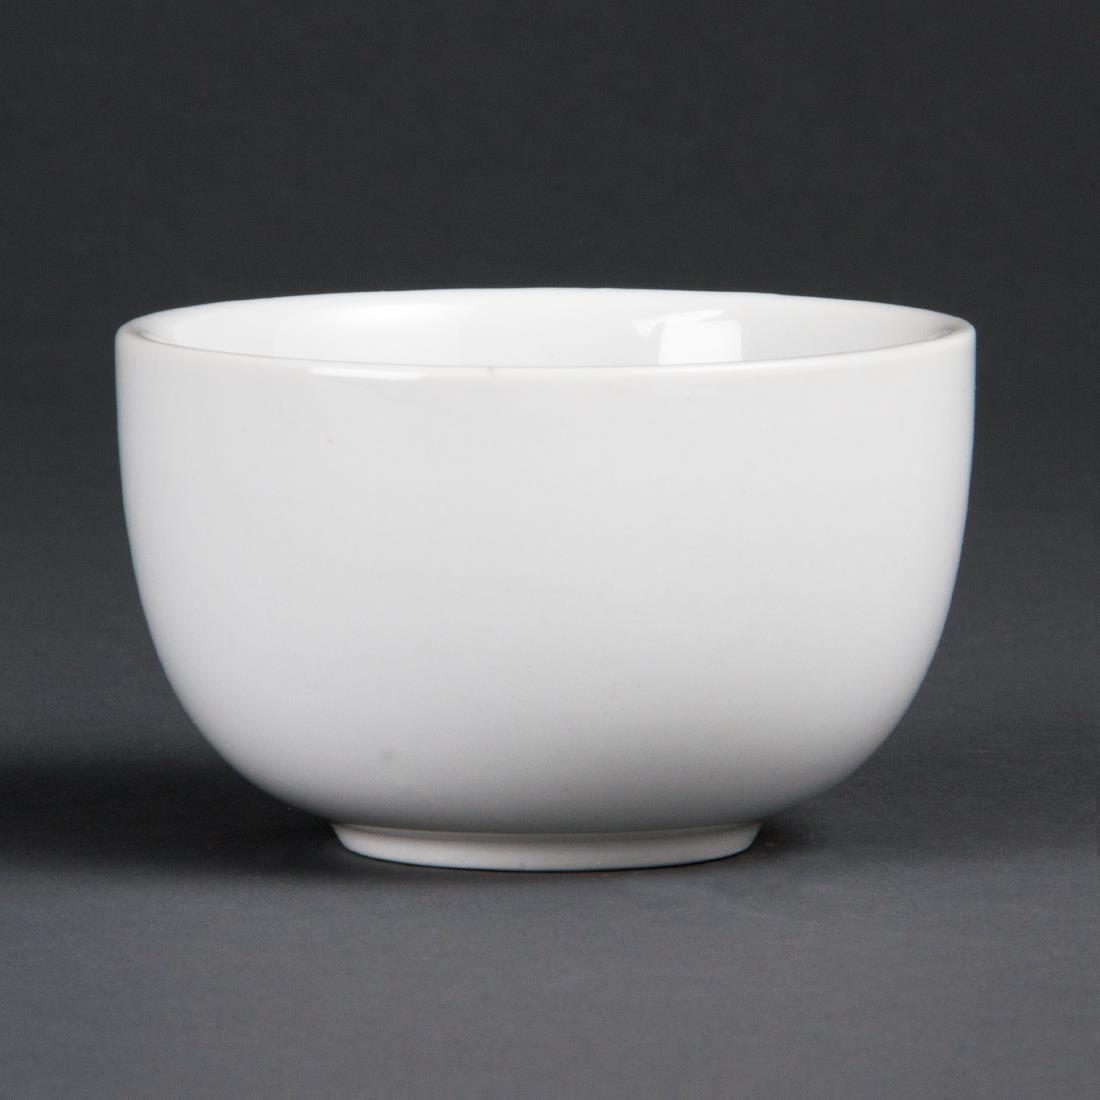 Olympia Whiteware Sugar Bowls 95mm